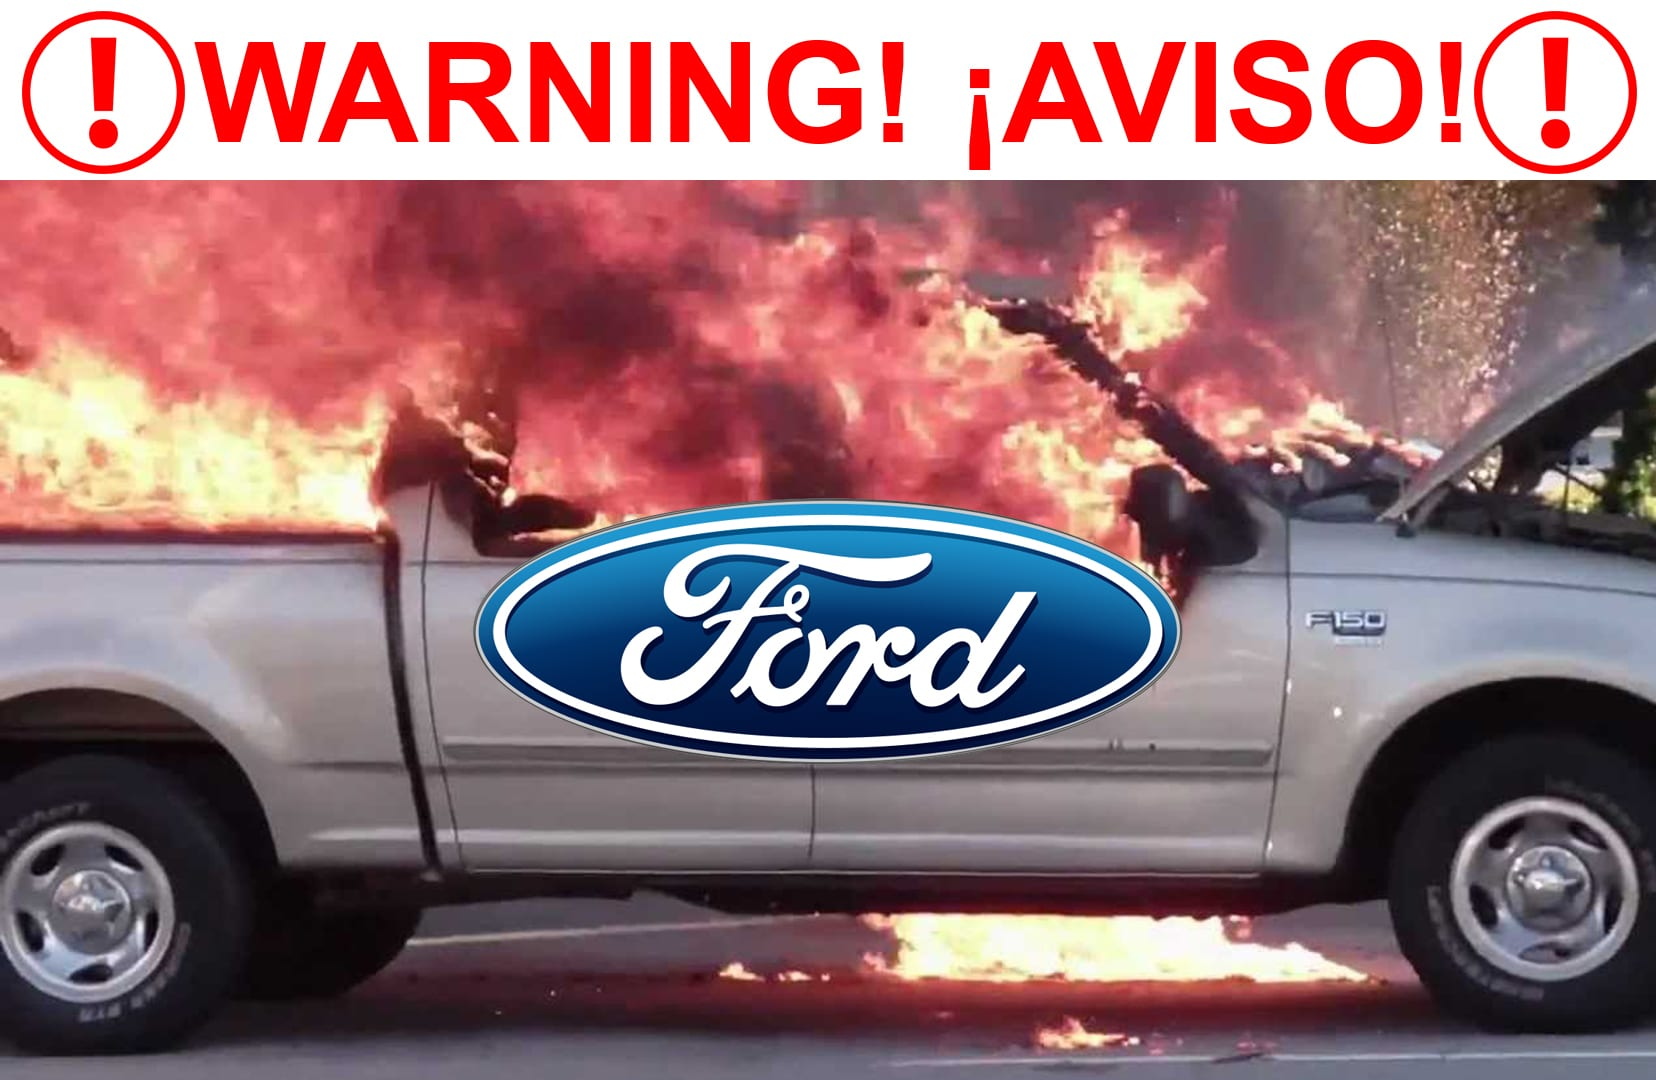 Recall alert 2 million ford f 150 trucks recalled due to fire hazard moore law firm